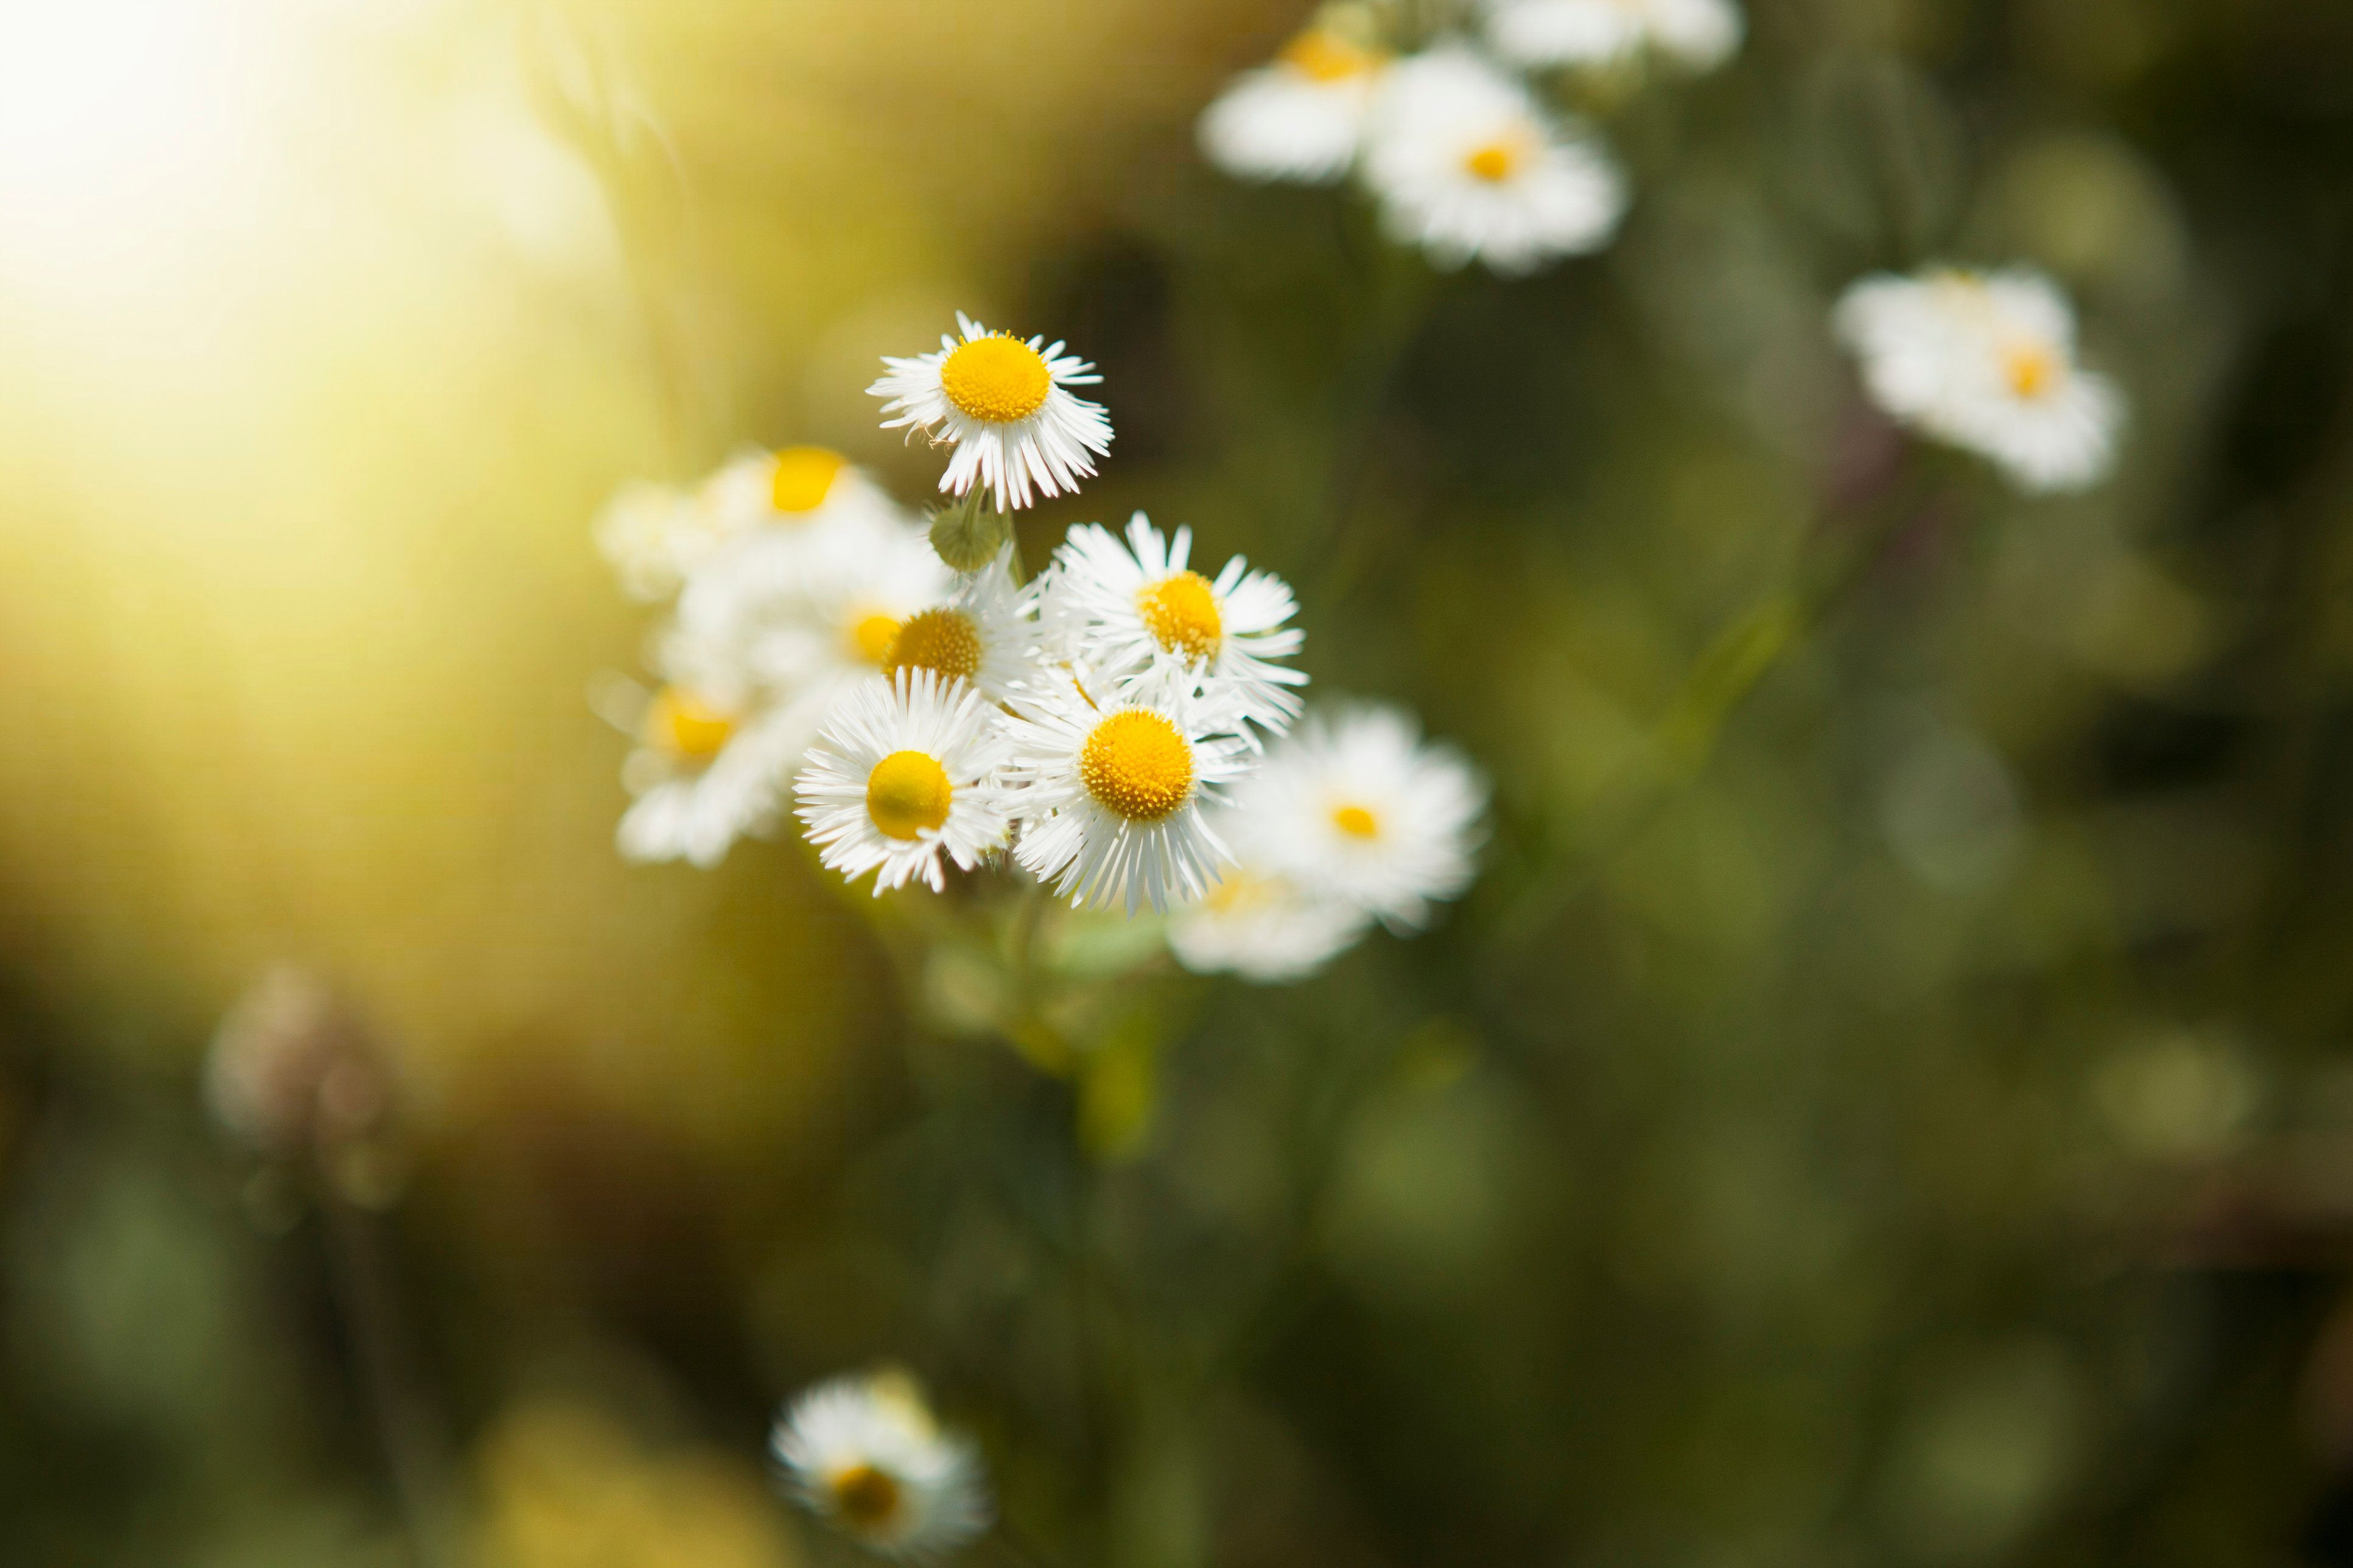 Close up of daisies outdoors